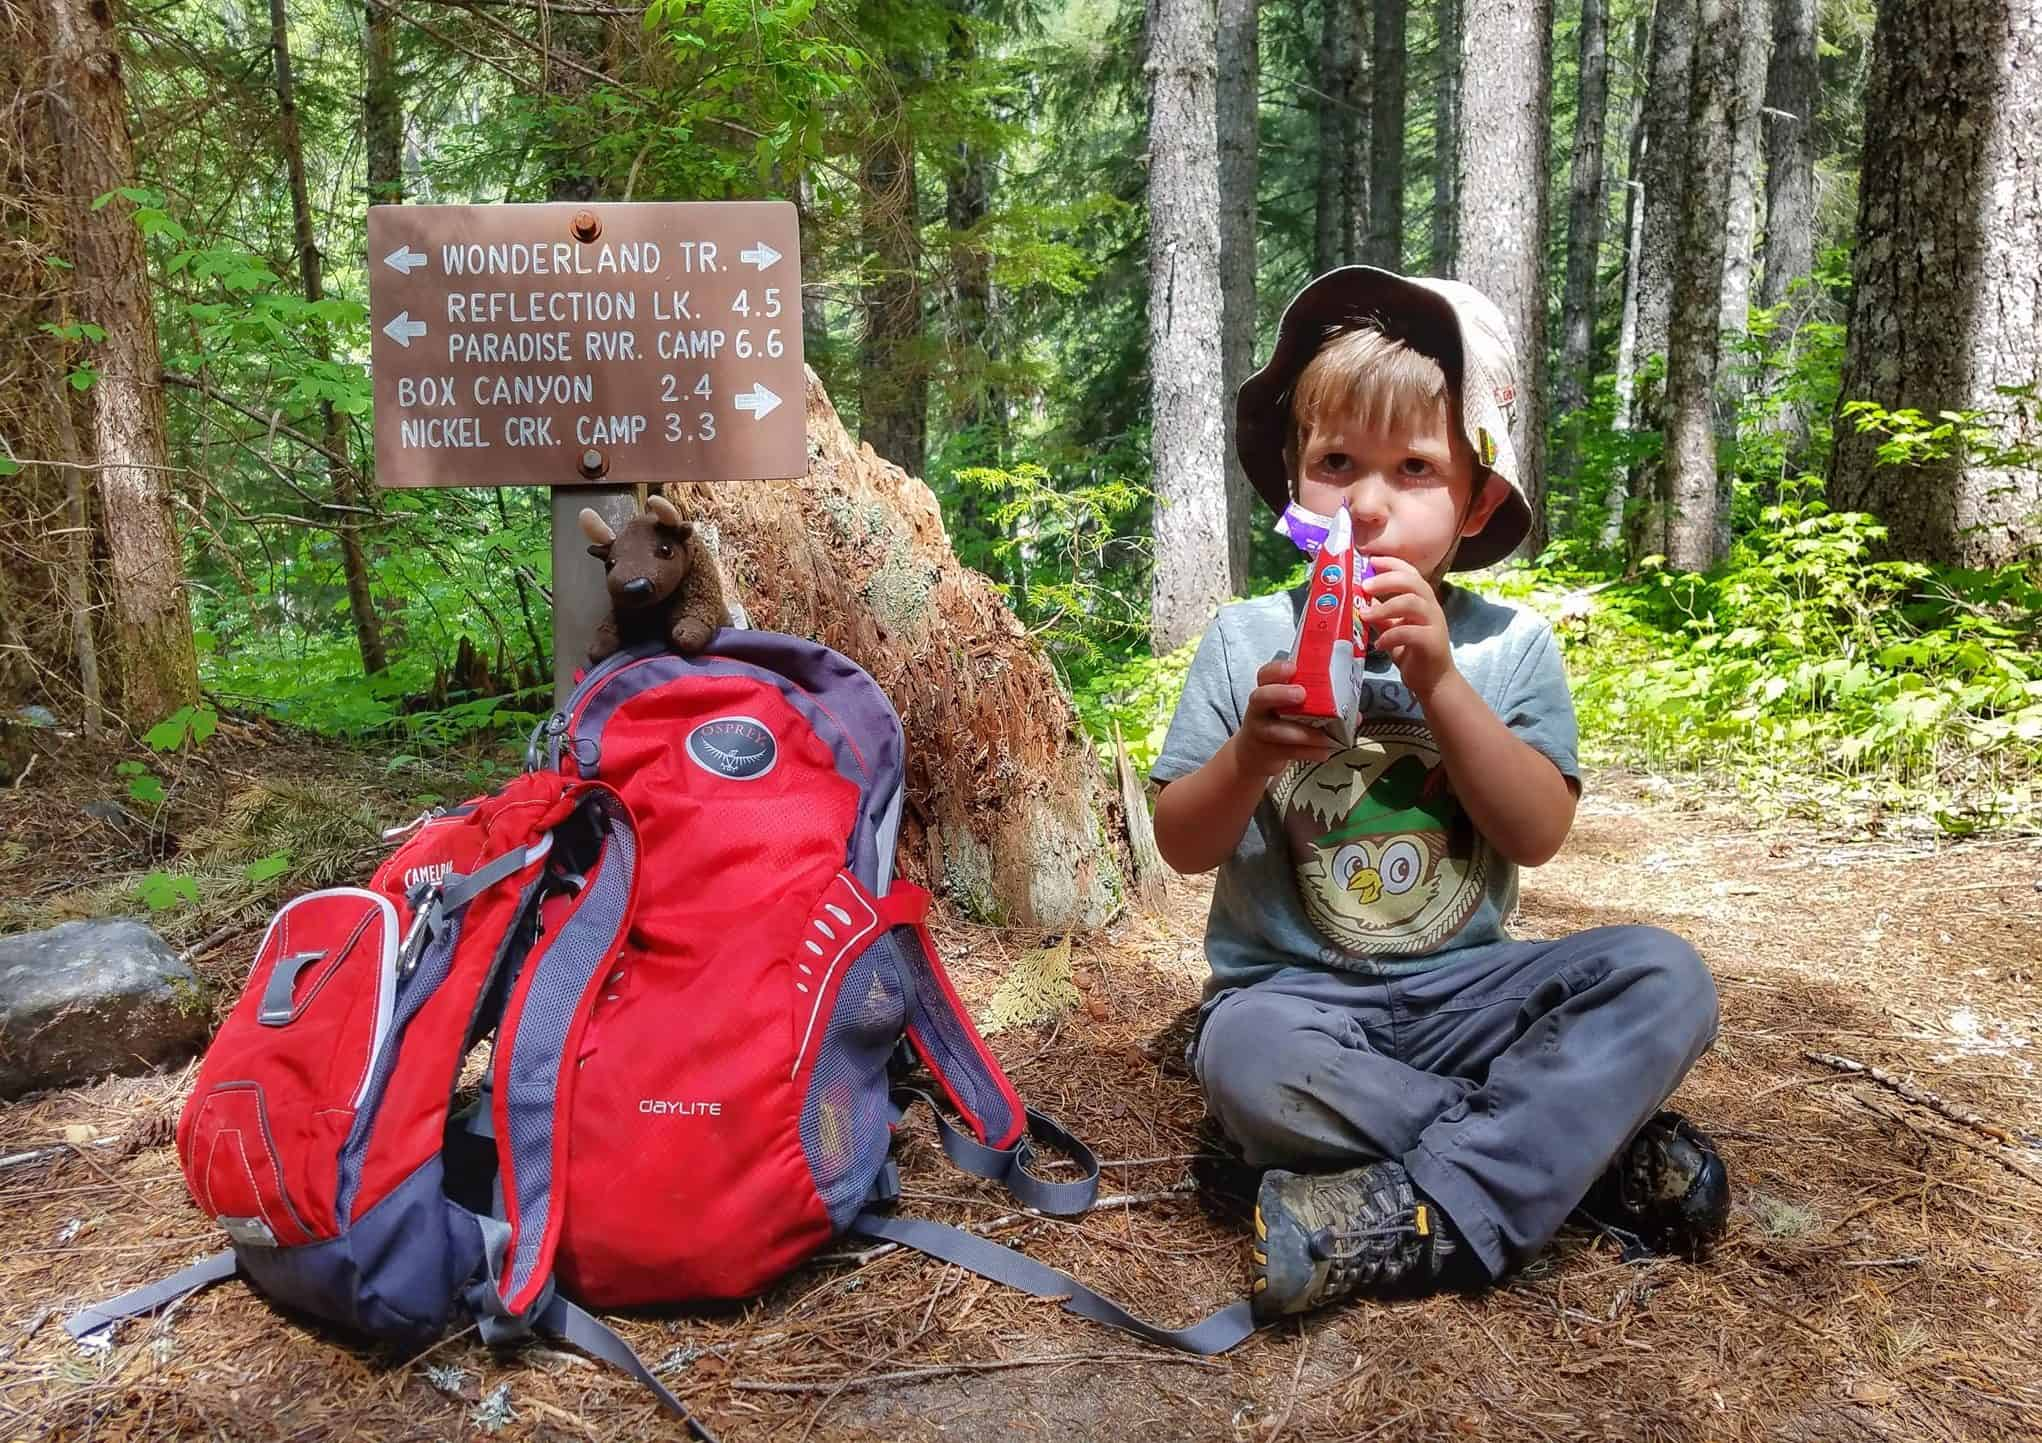 Young boy drinking from a carton while sitting by a trail sign